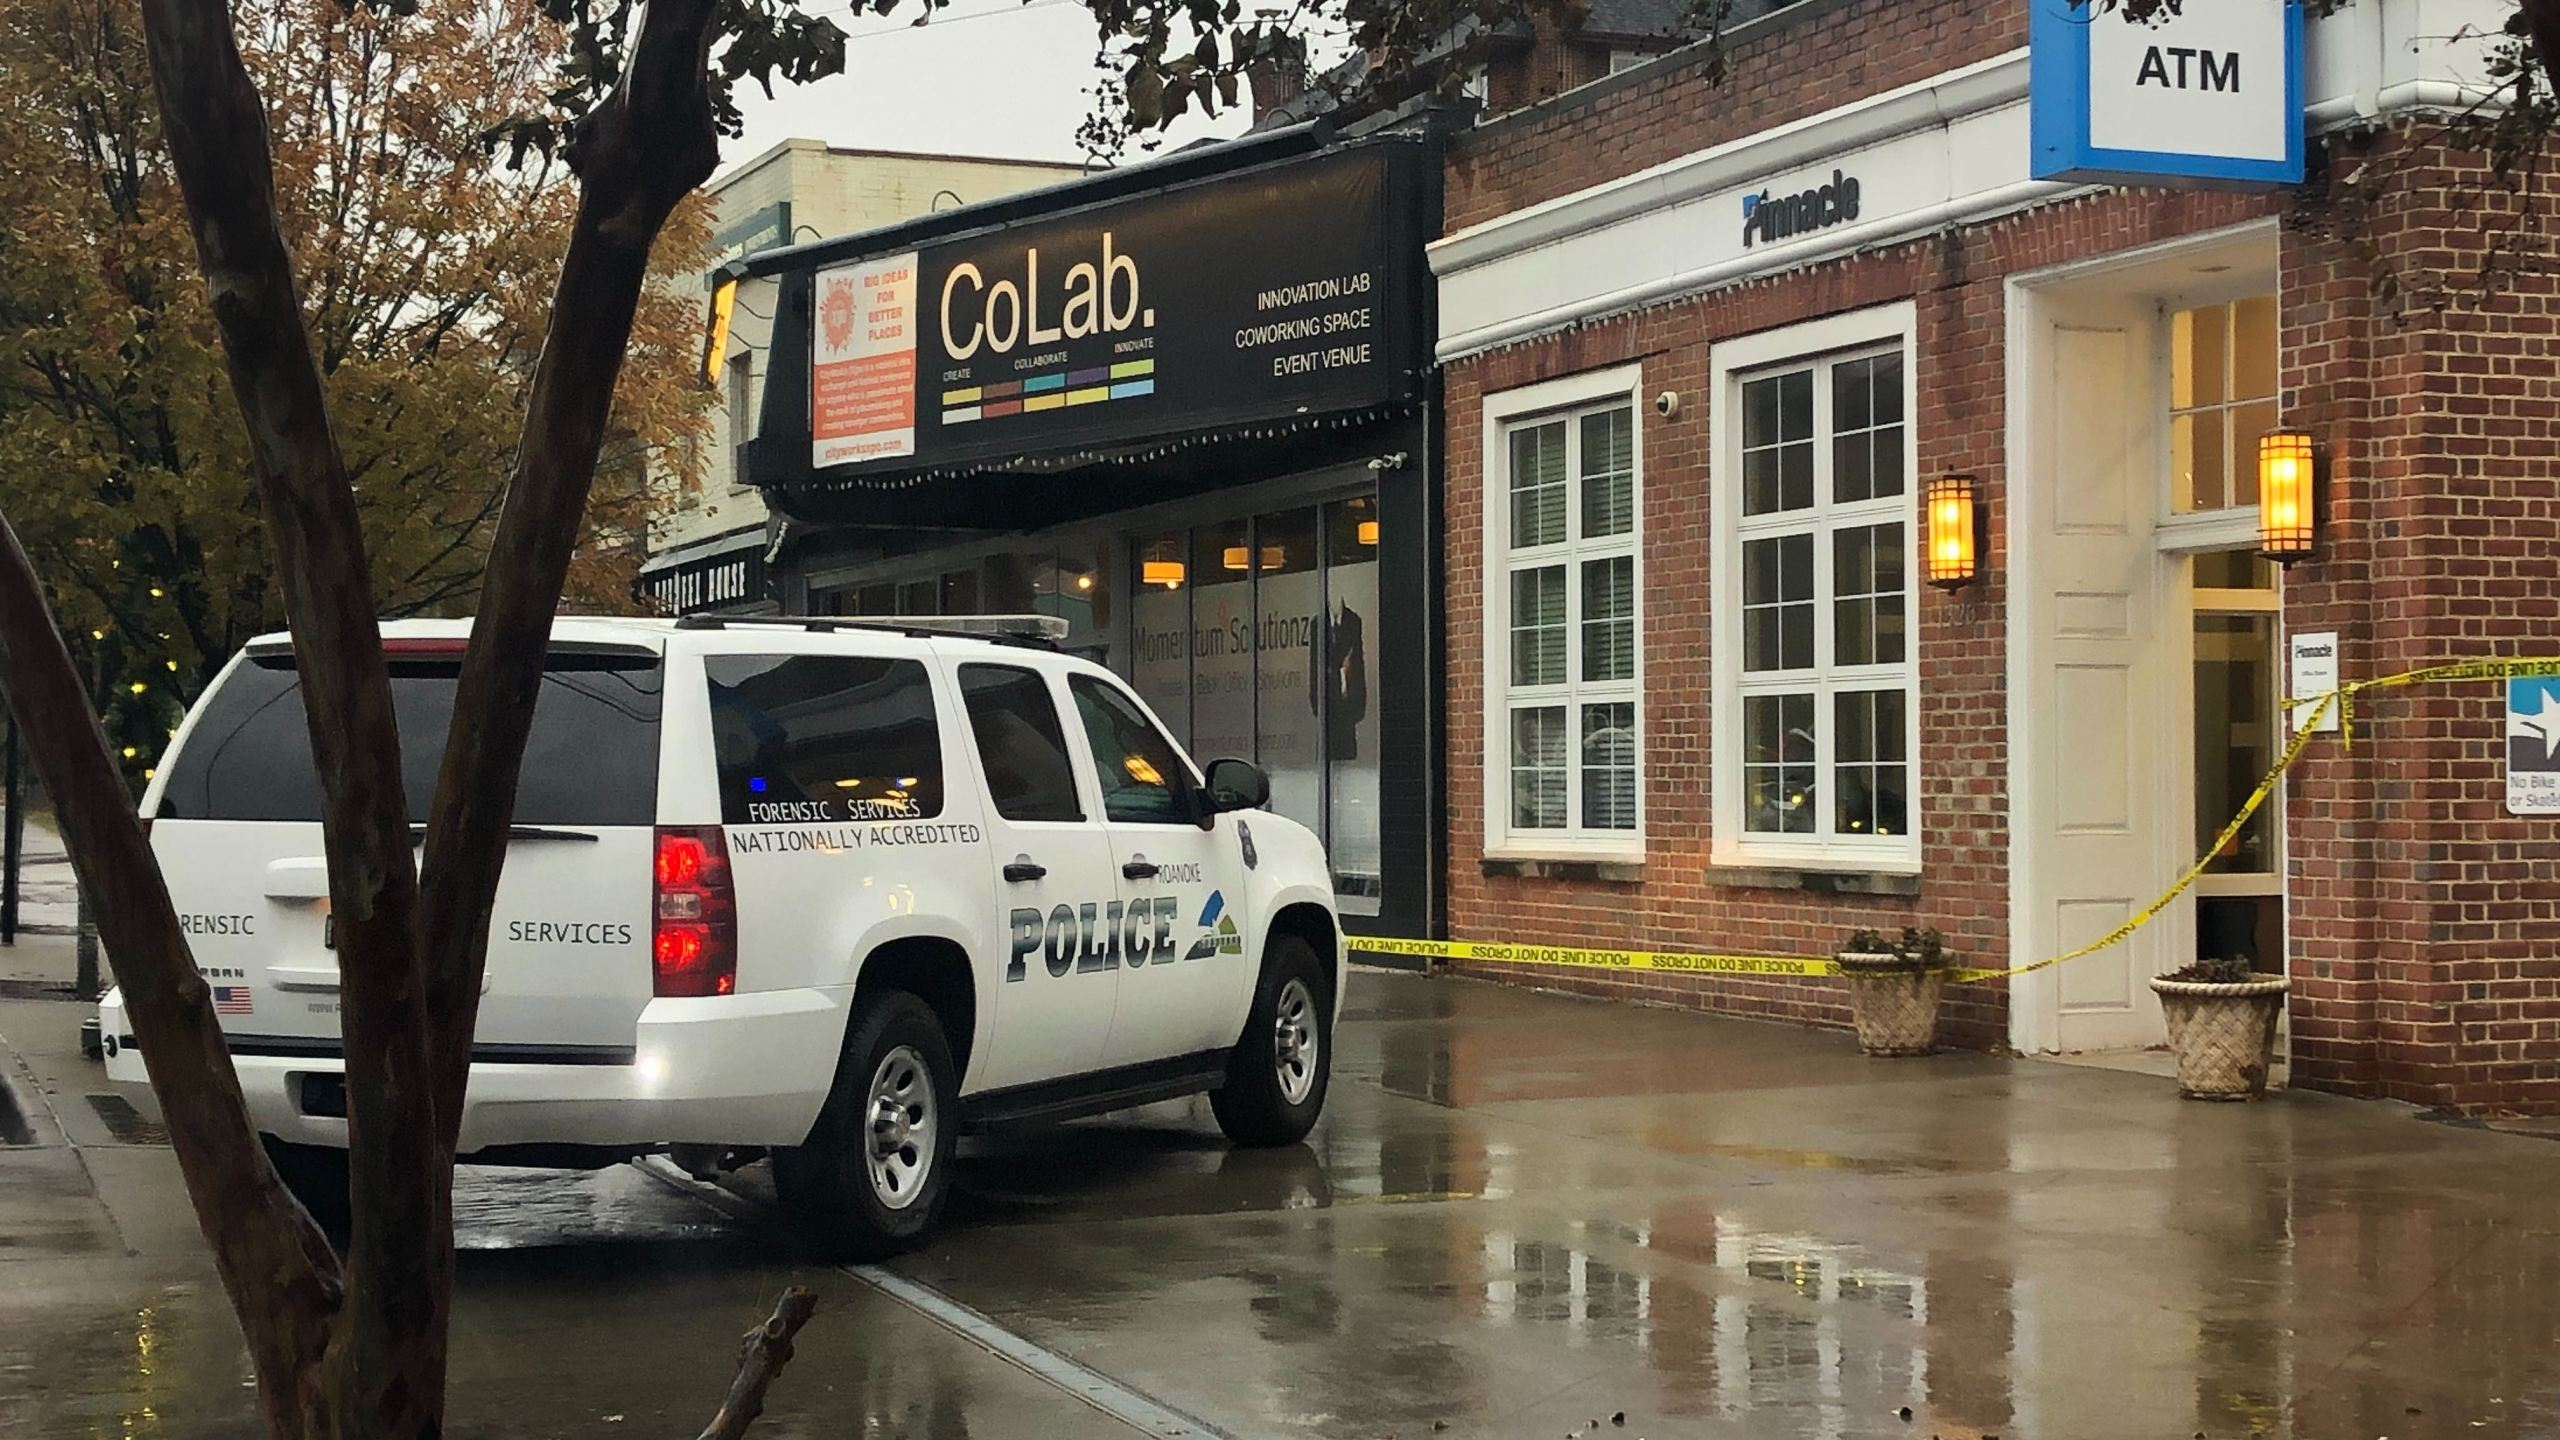 The Pinnacle Bank in the 1300 block of Grandin Road Southwest was robbed Monday afternoon, Nov. 18. (Photo: Breana Albizu/WFXR News)